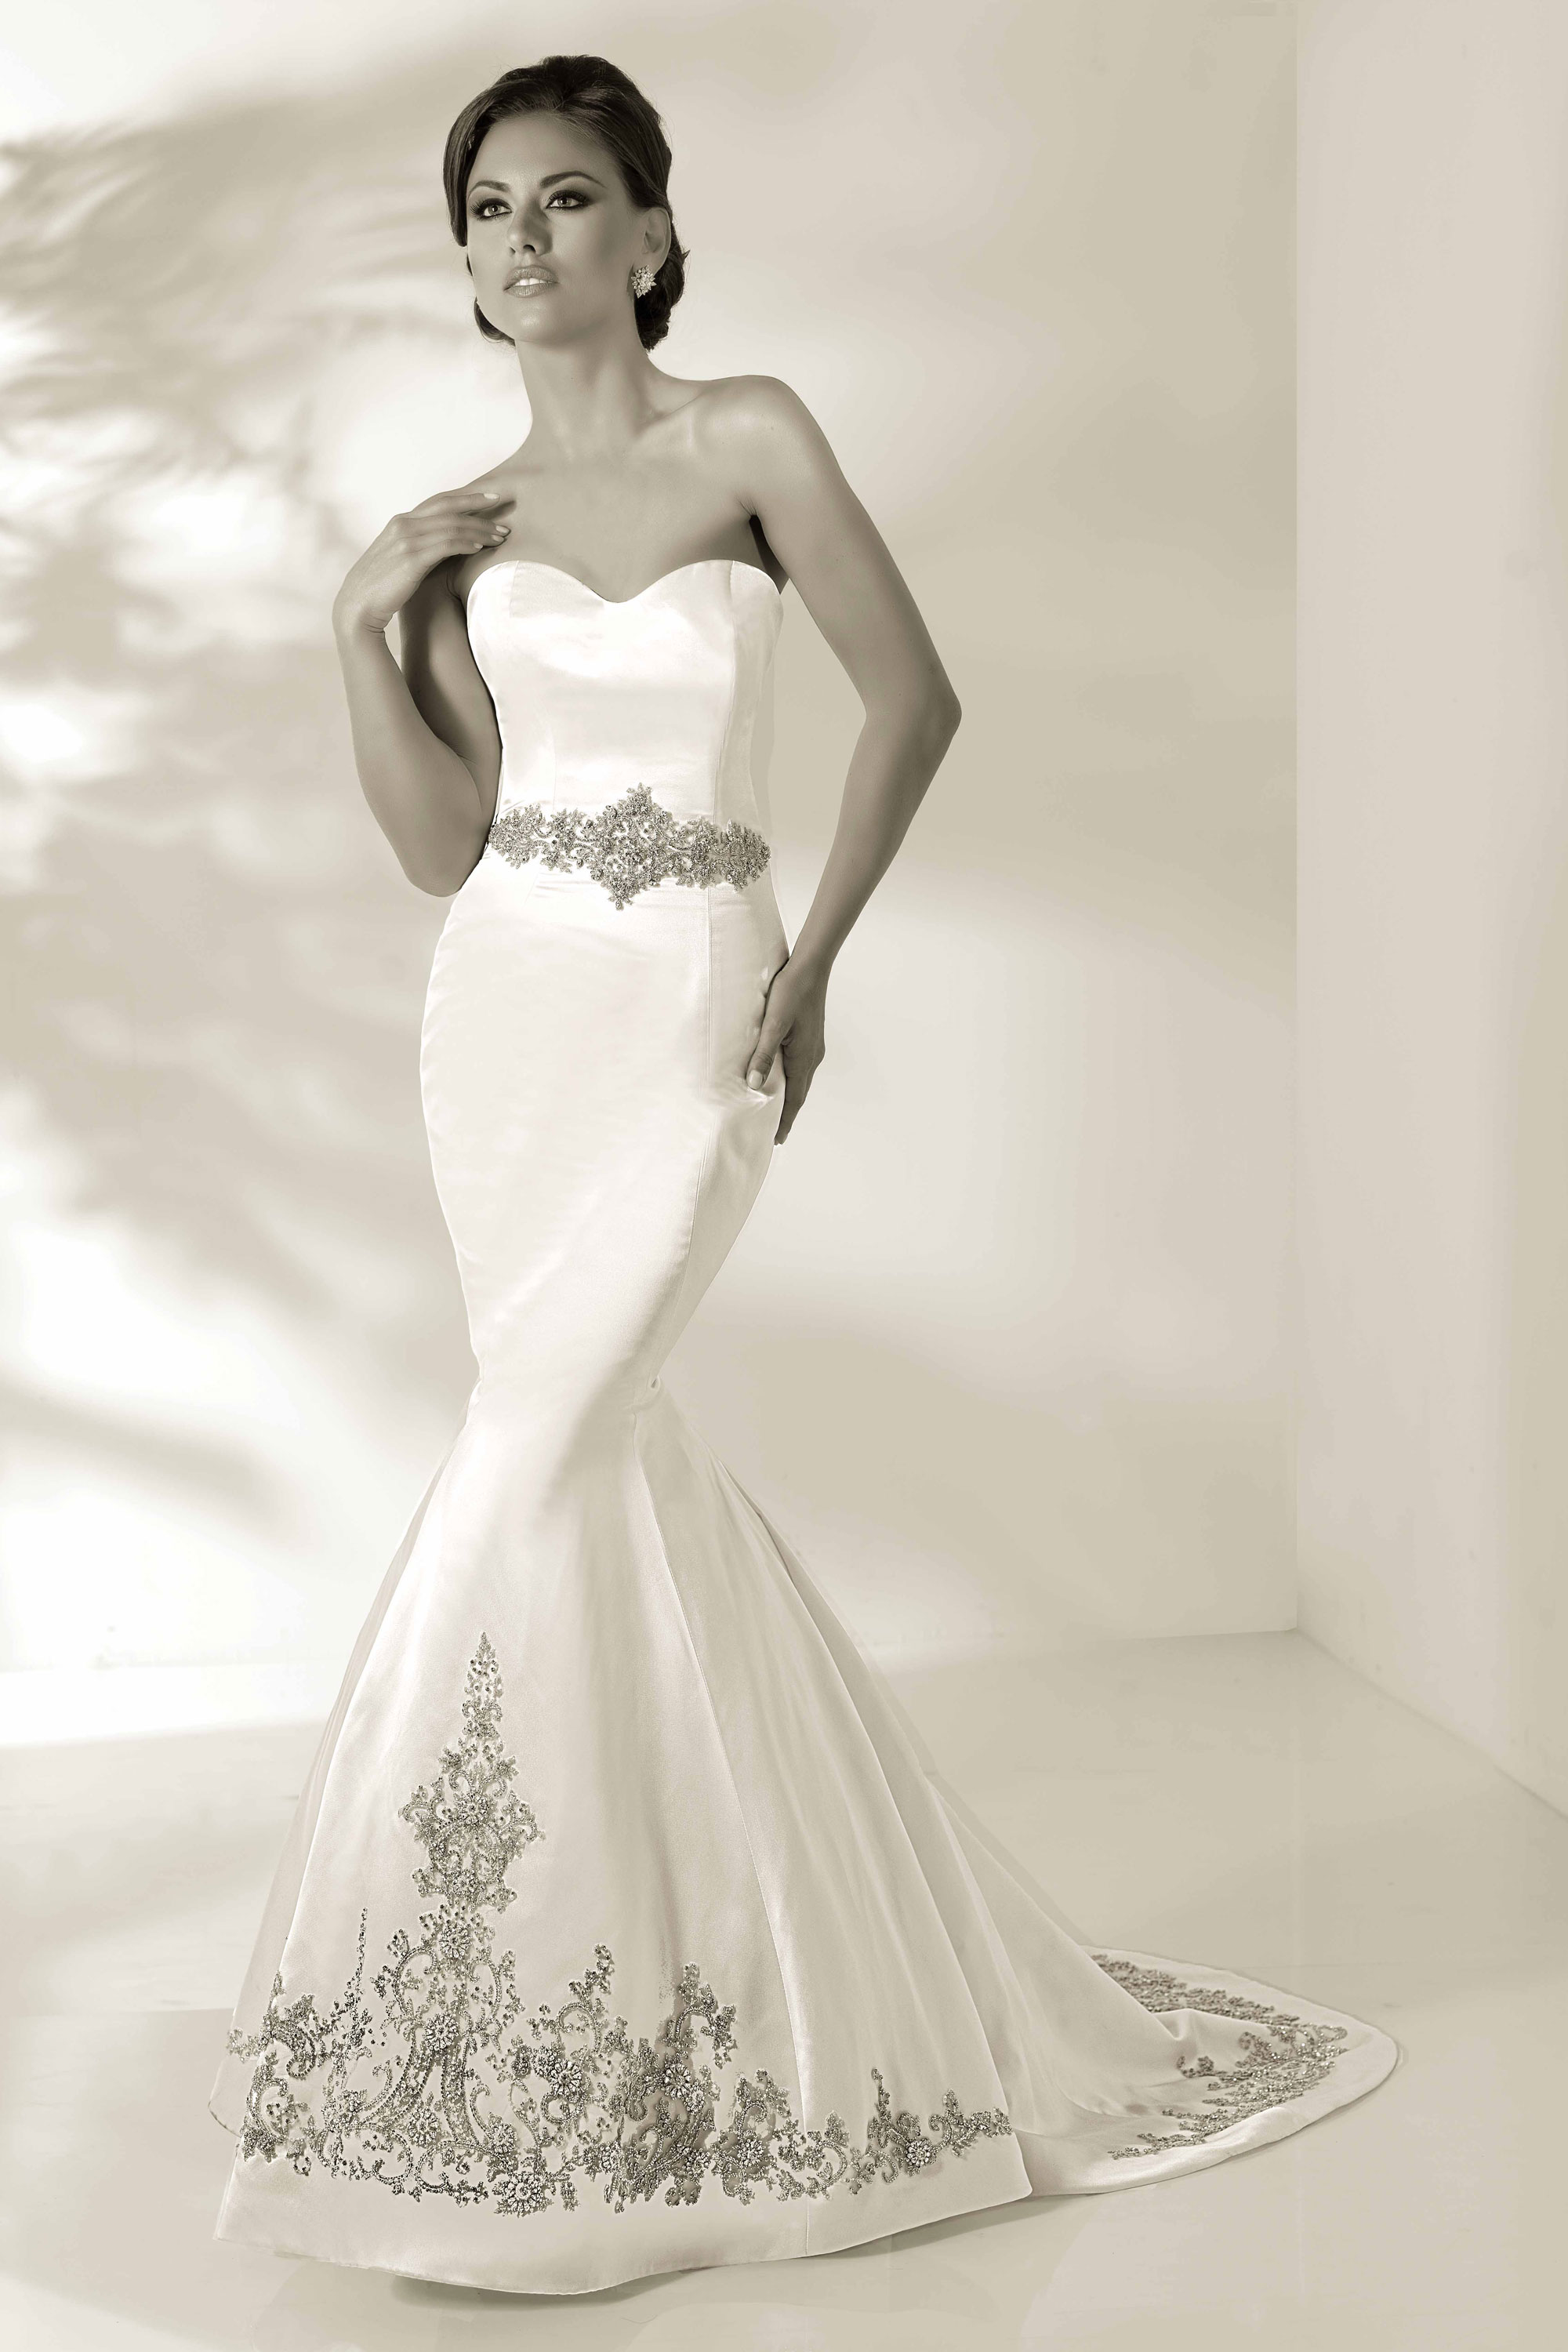 cristiano-lucci-wedding-dresses-12-01052014